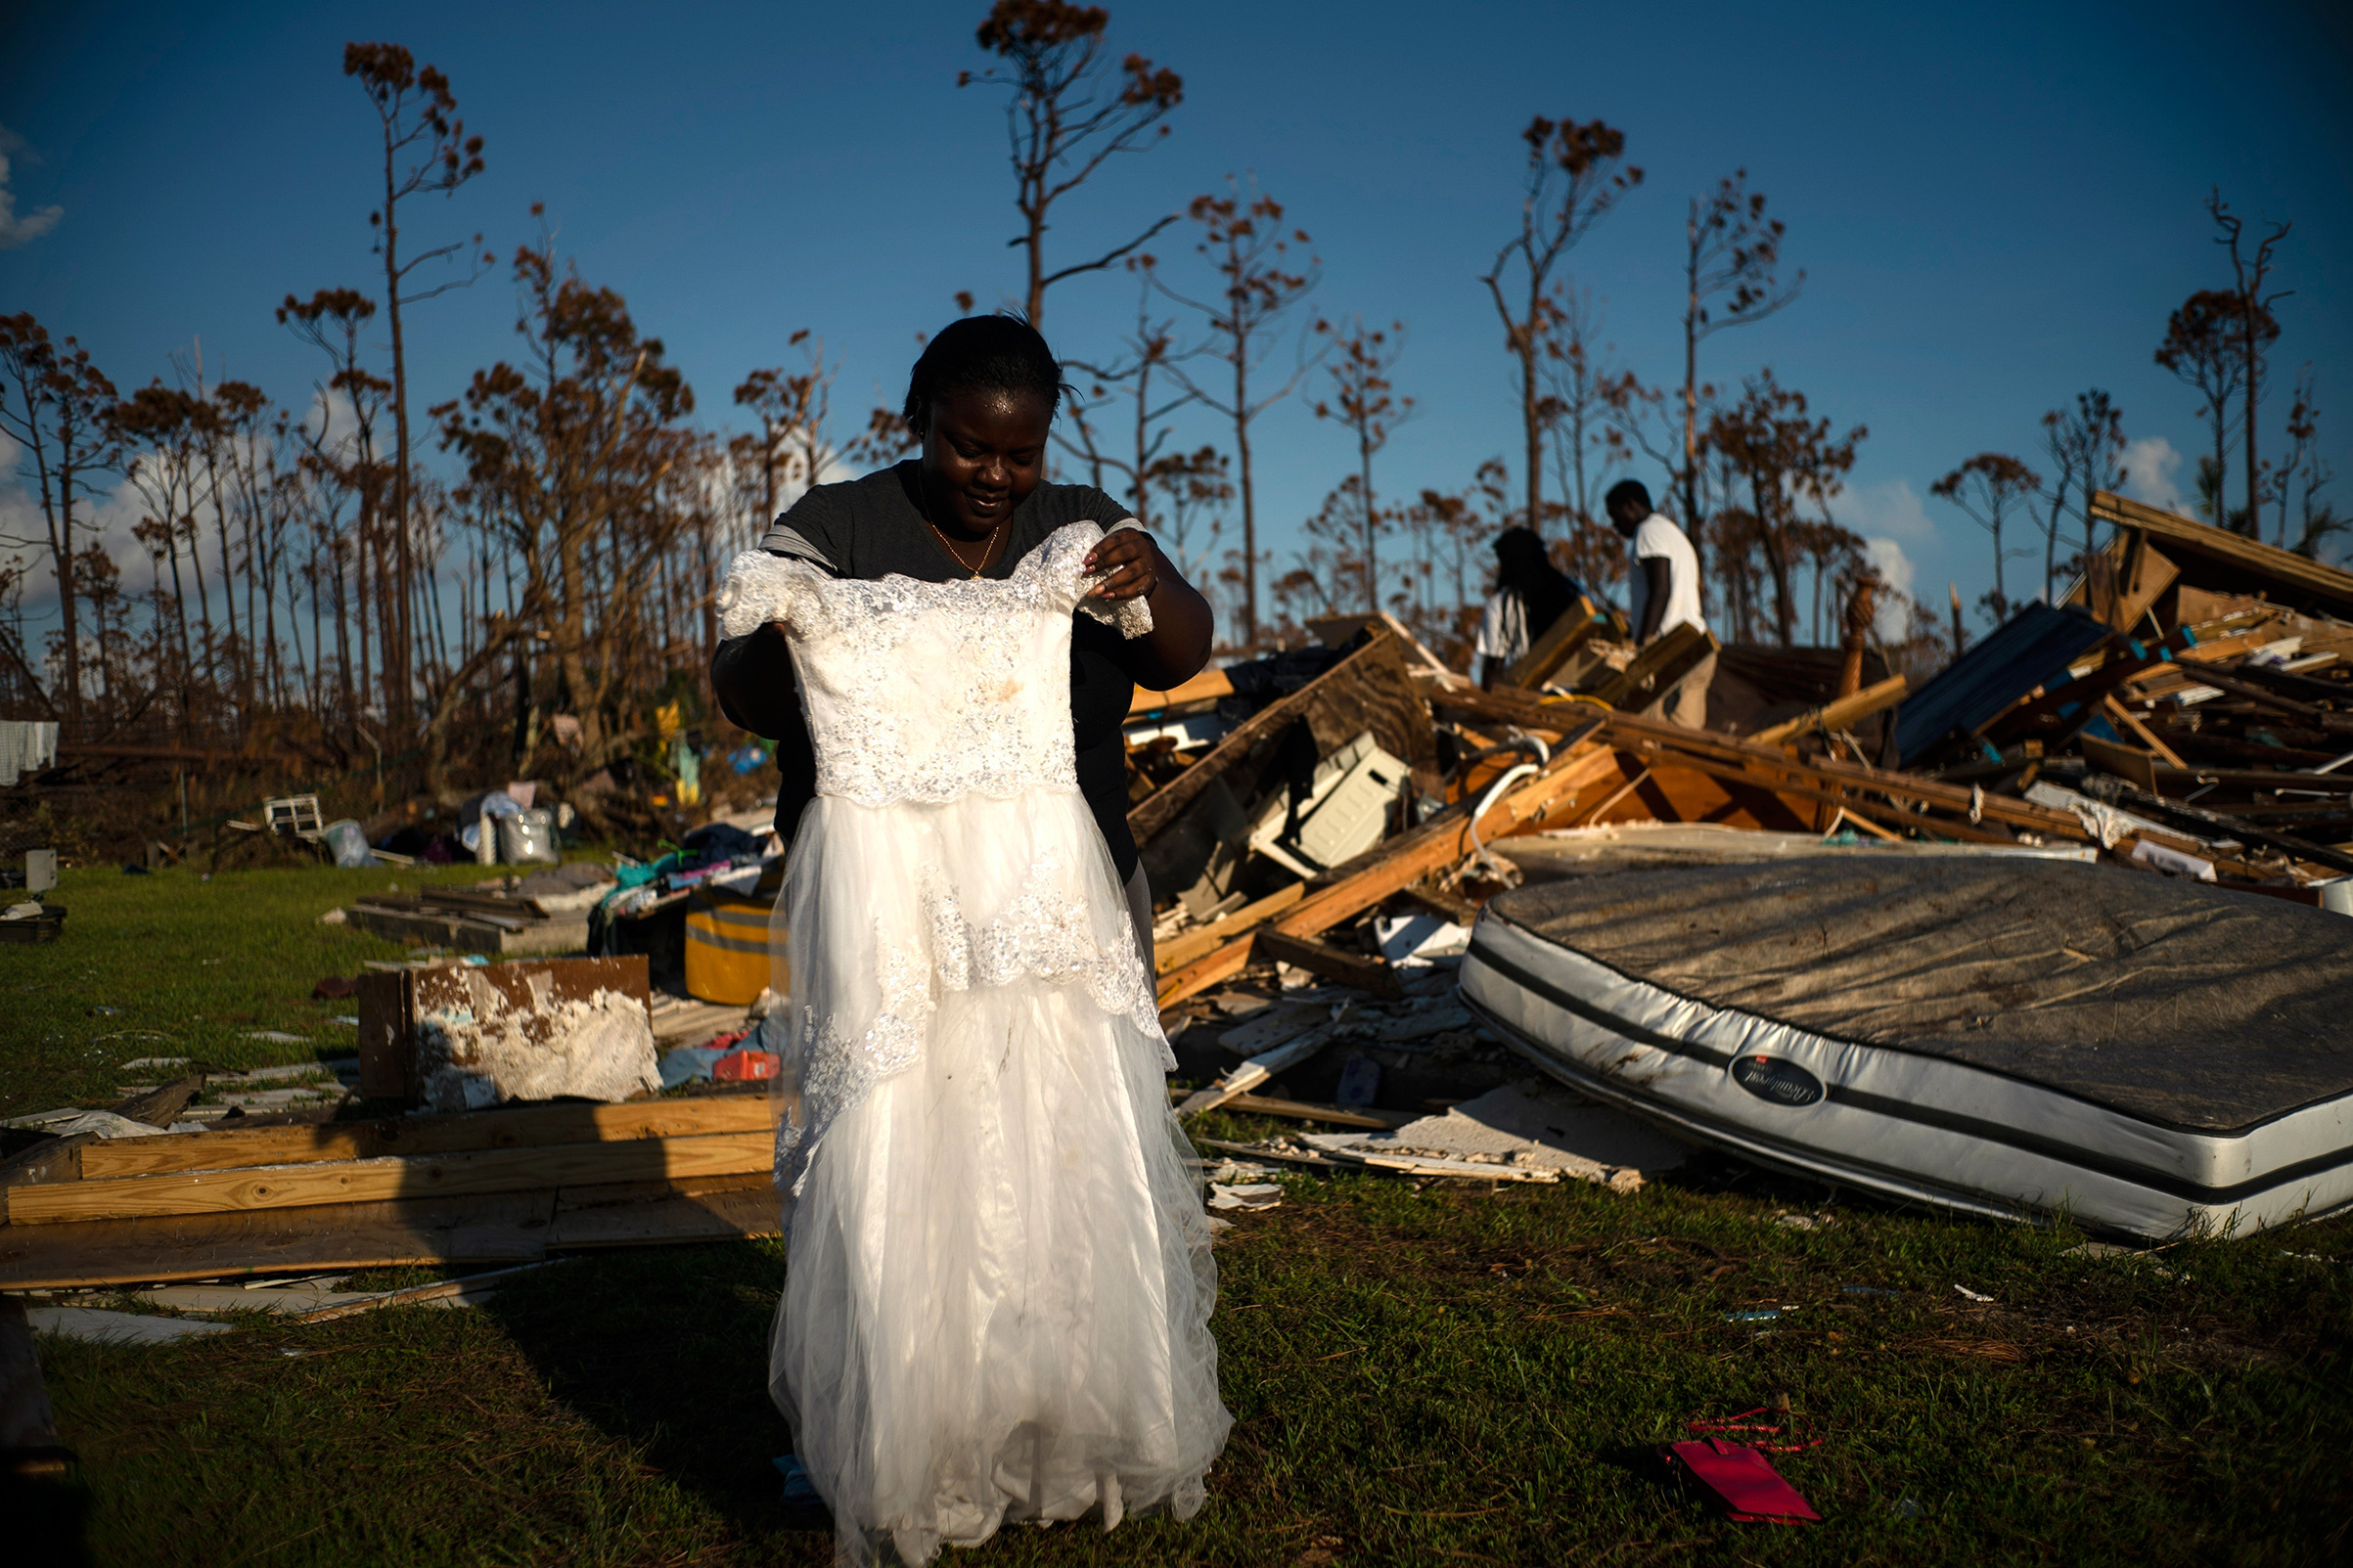 Synobia Reckley holds up the dress her niece wore as a flower girl at her wedding, as she goes through valuables in the rubble of her home destroyed one week ago by Hurricane Dorian in Rocky Creek East End, Grand Bahama, Bahamas, Sept. 8, 2019.